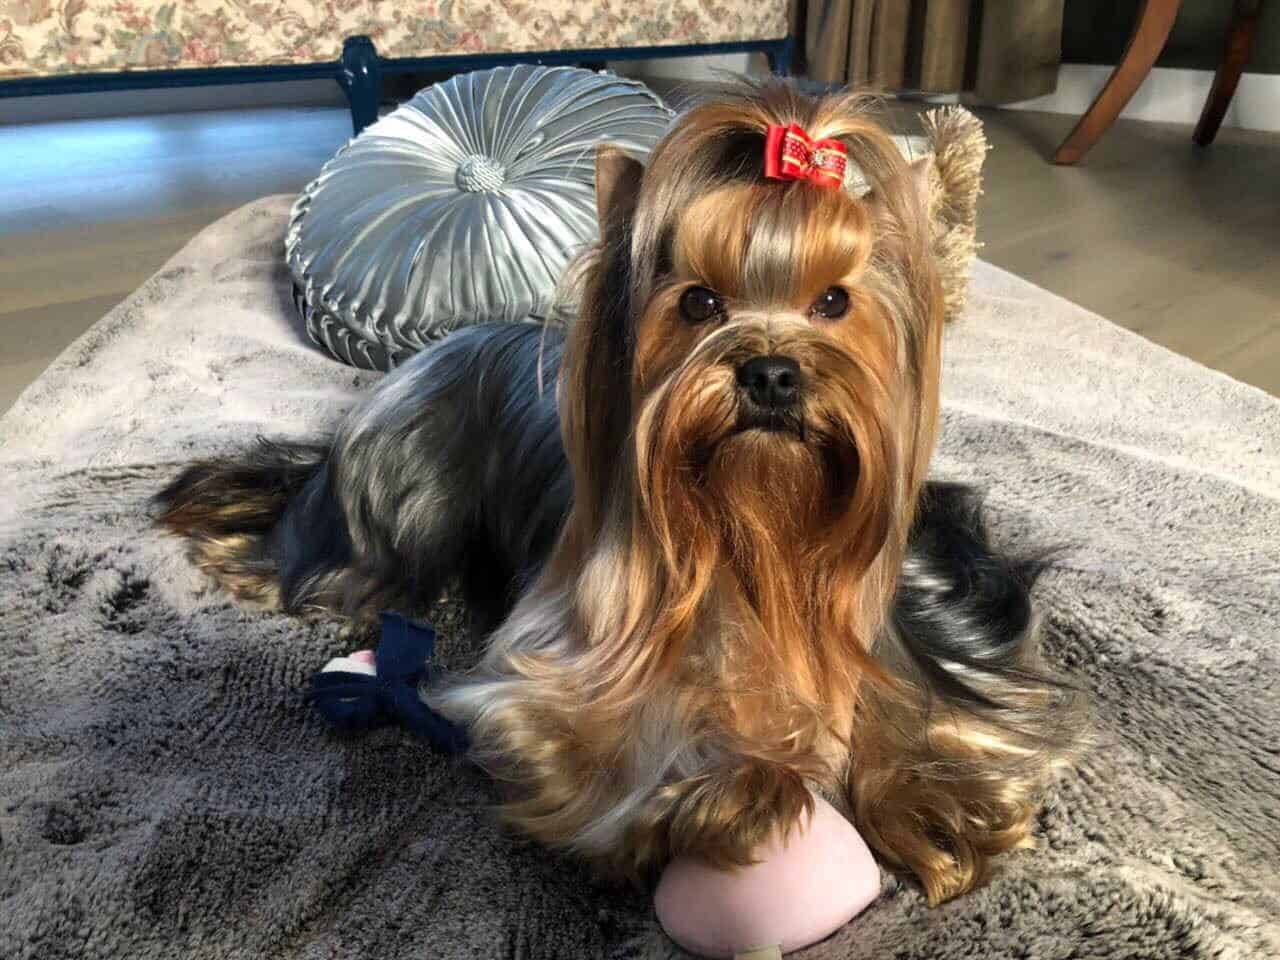 Yorkshire terrier sitting on carpet